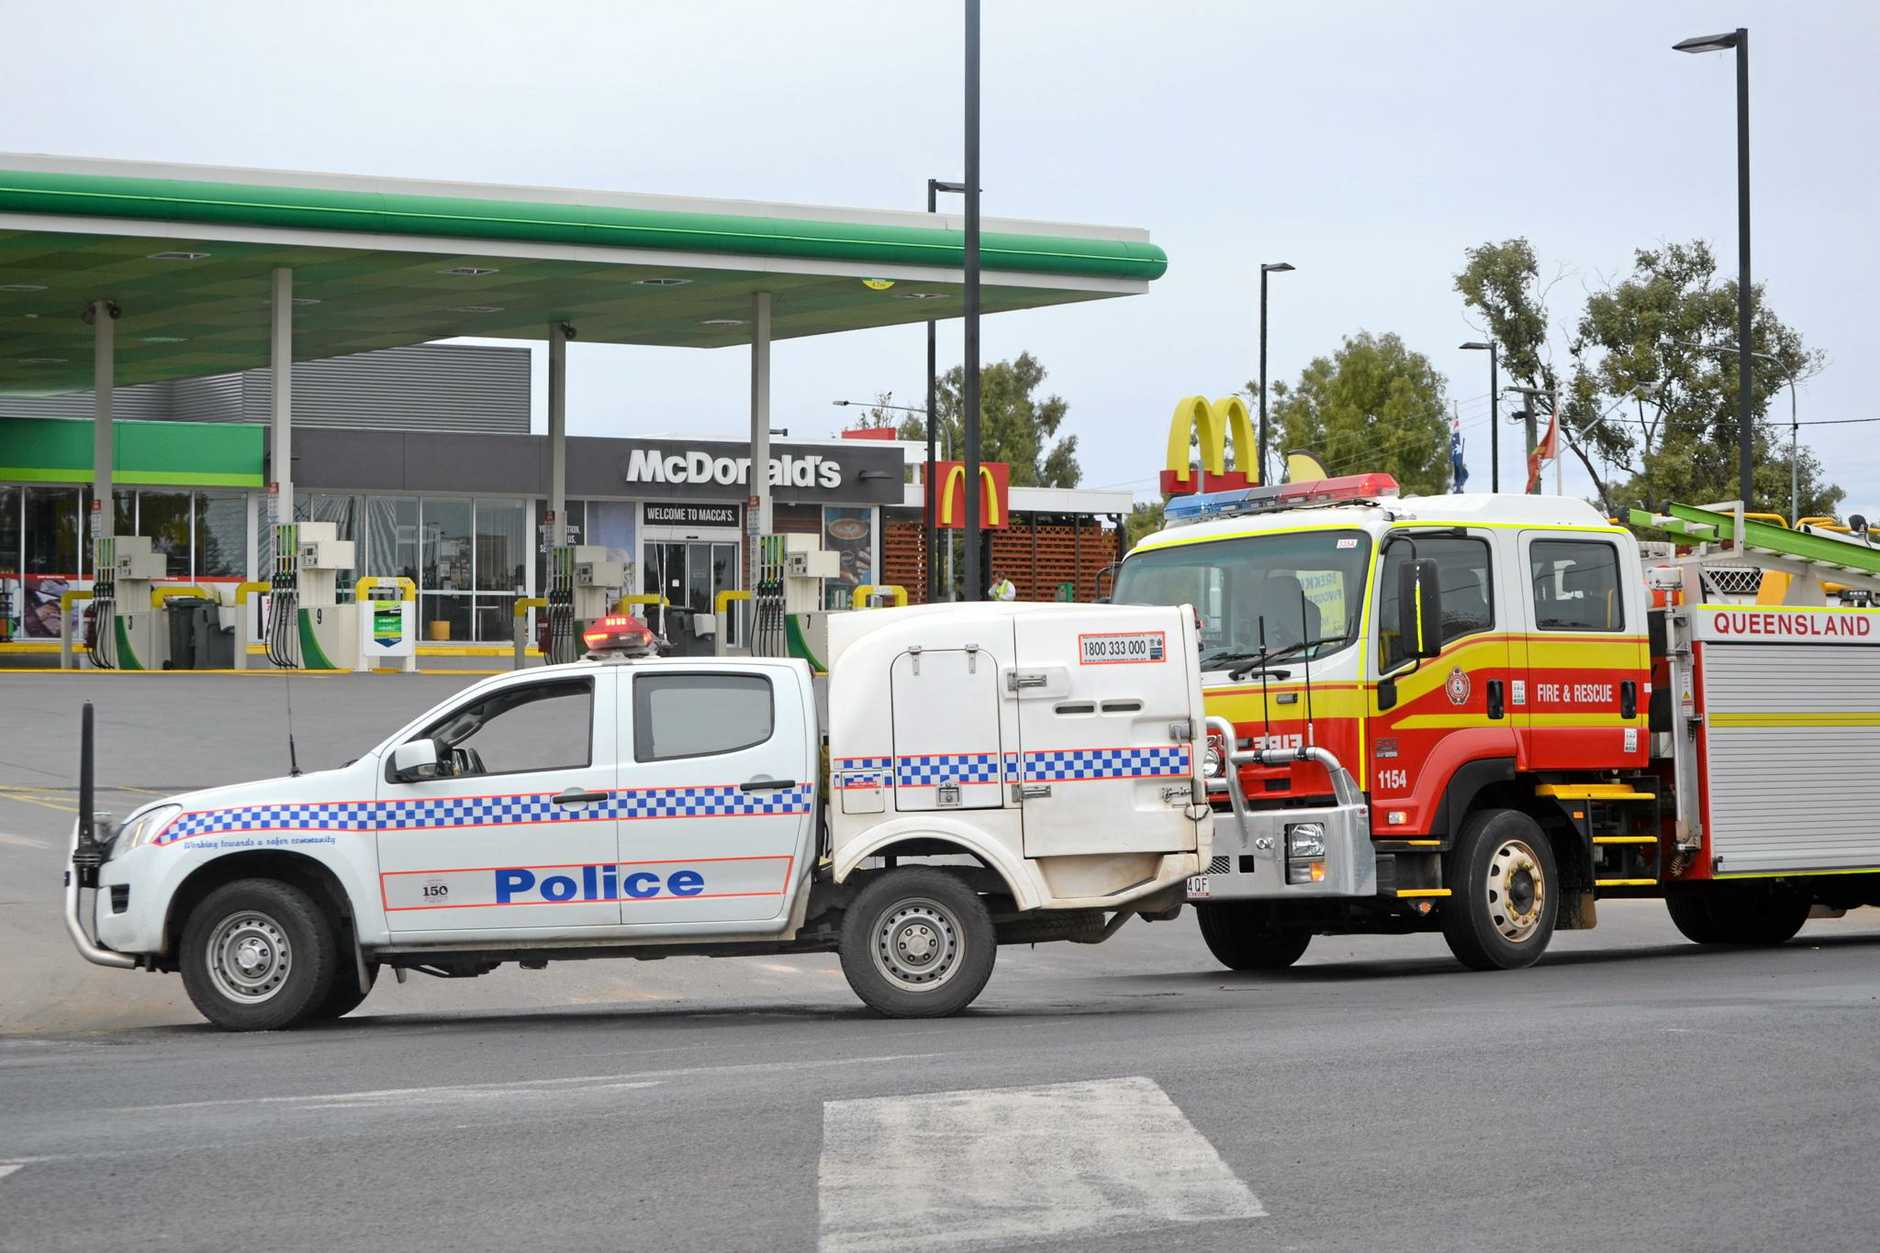 Emergency services on scene at a suspected gas leak at Chinchilla BP Service Station and McDonalds. July 14, 2016.